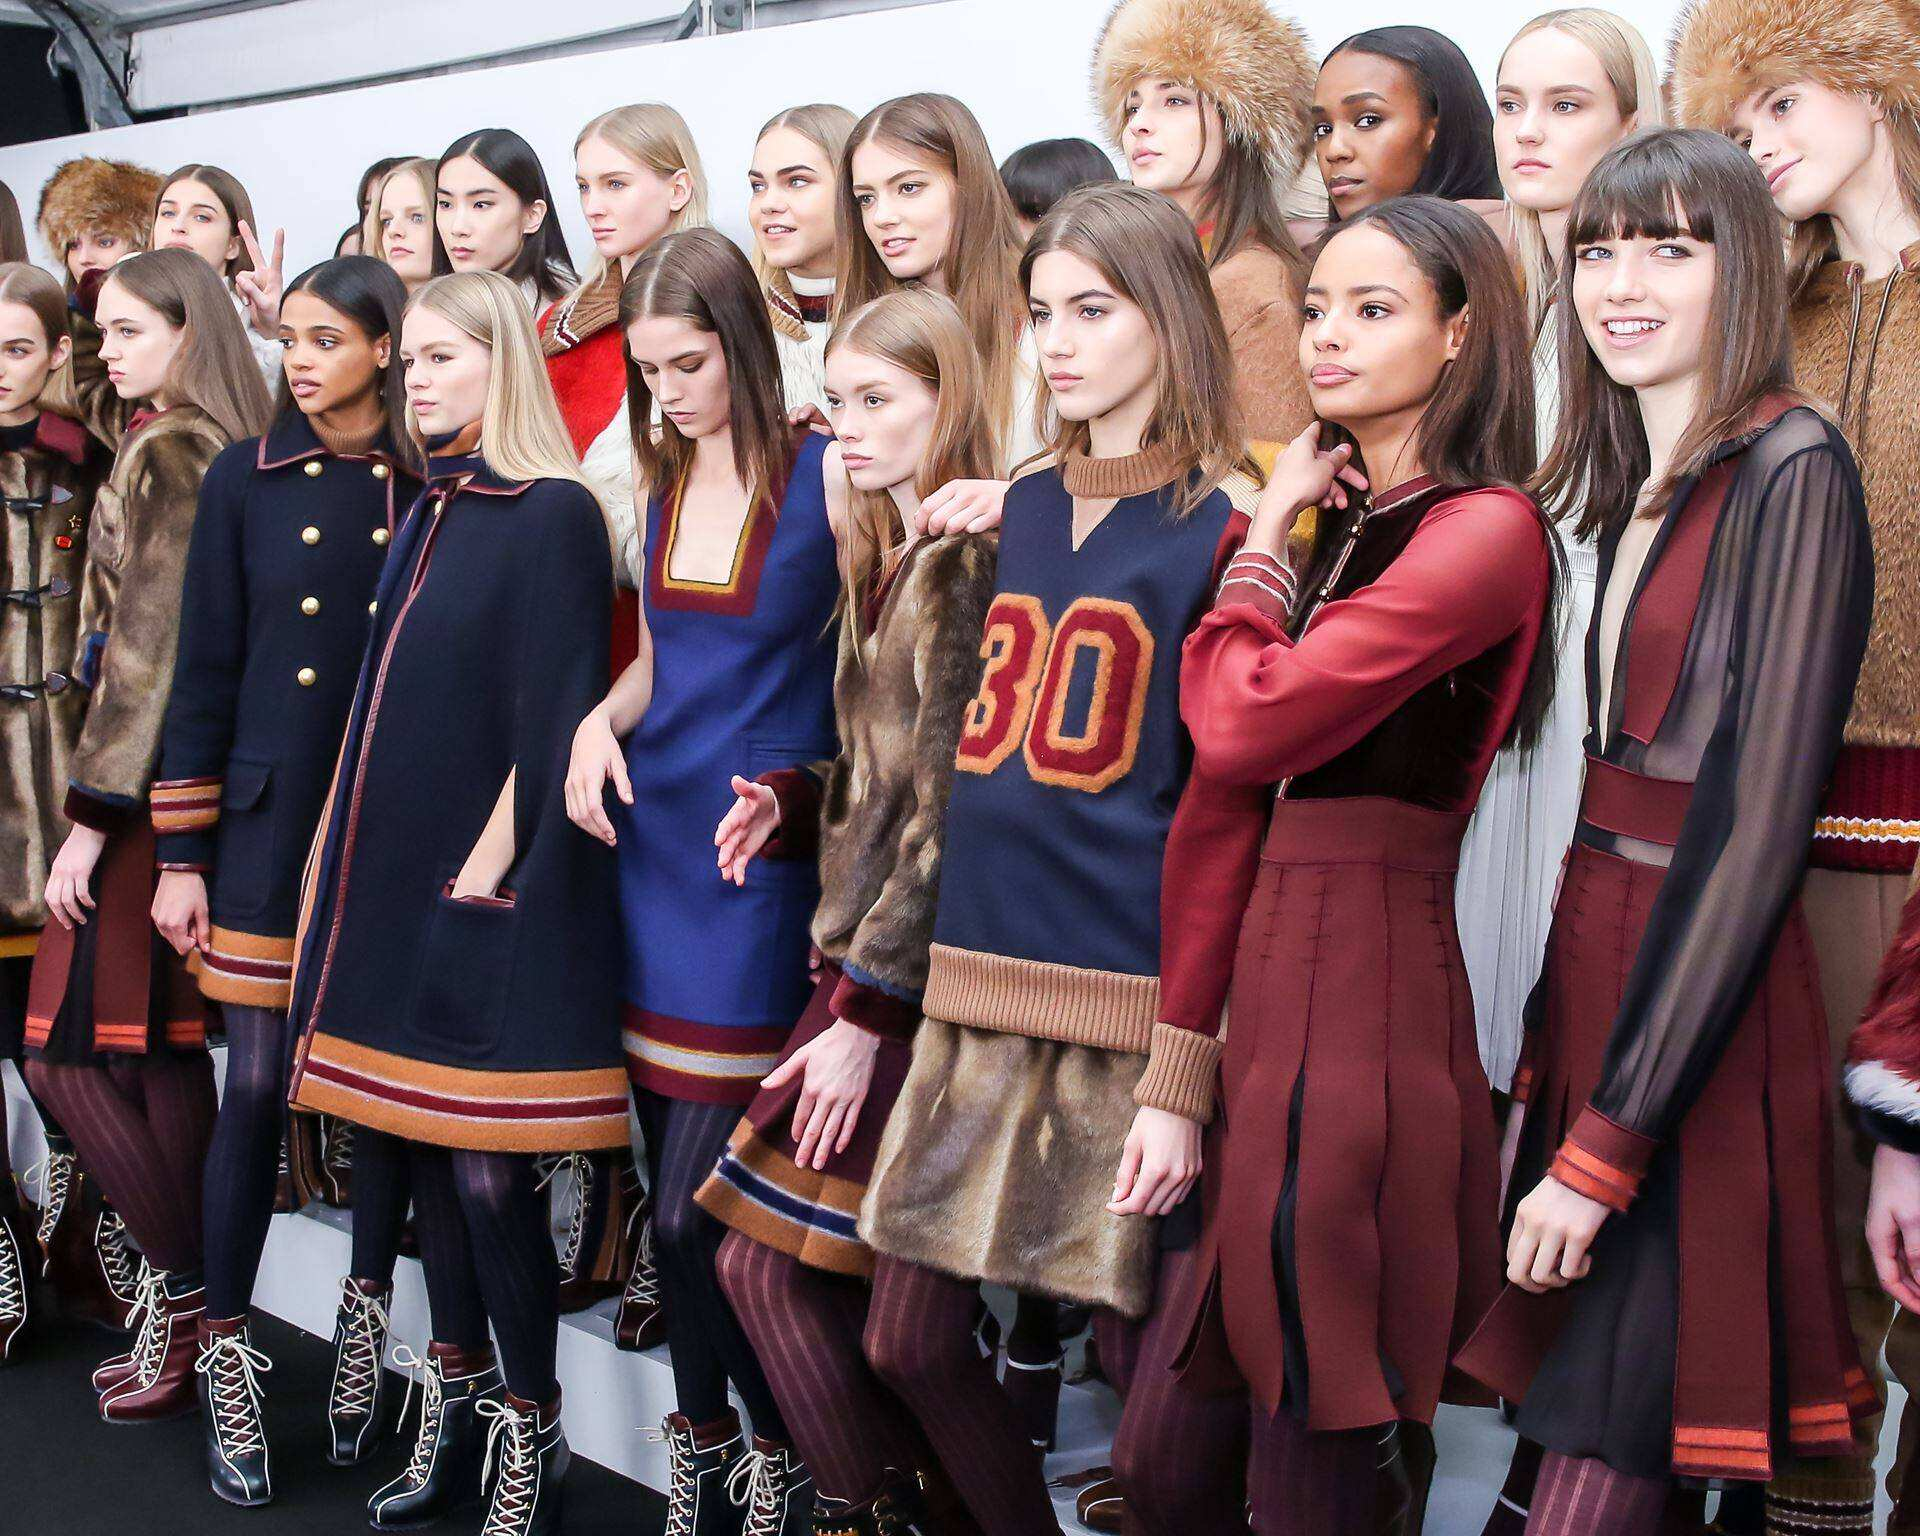 Backstage Tommy Hilfiger Models